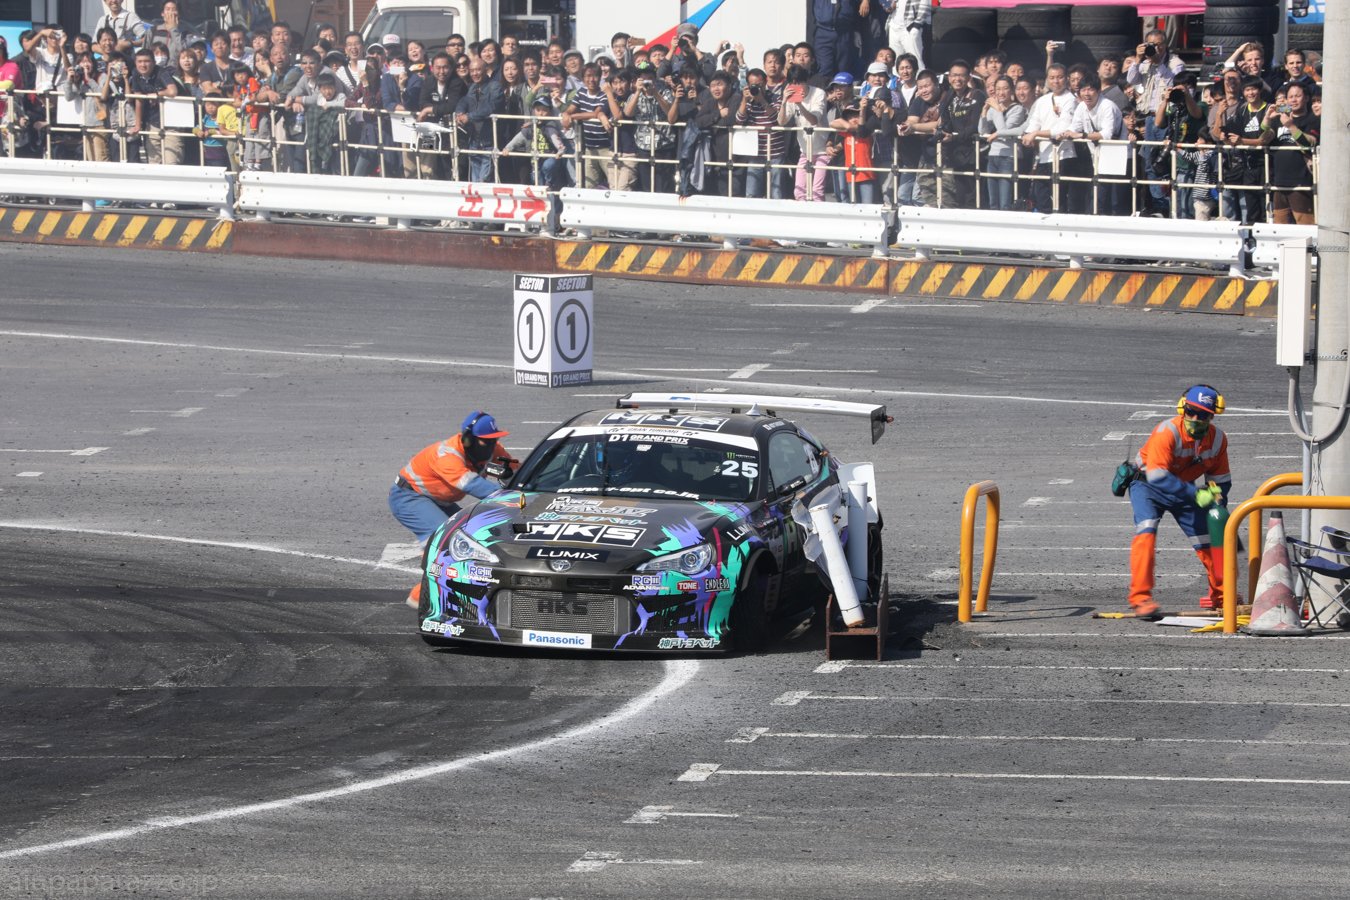 d1gp_tan2016lap3-12.jpg